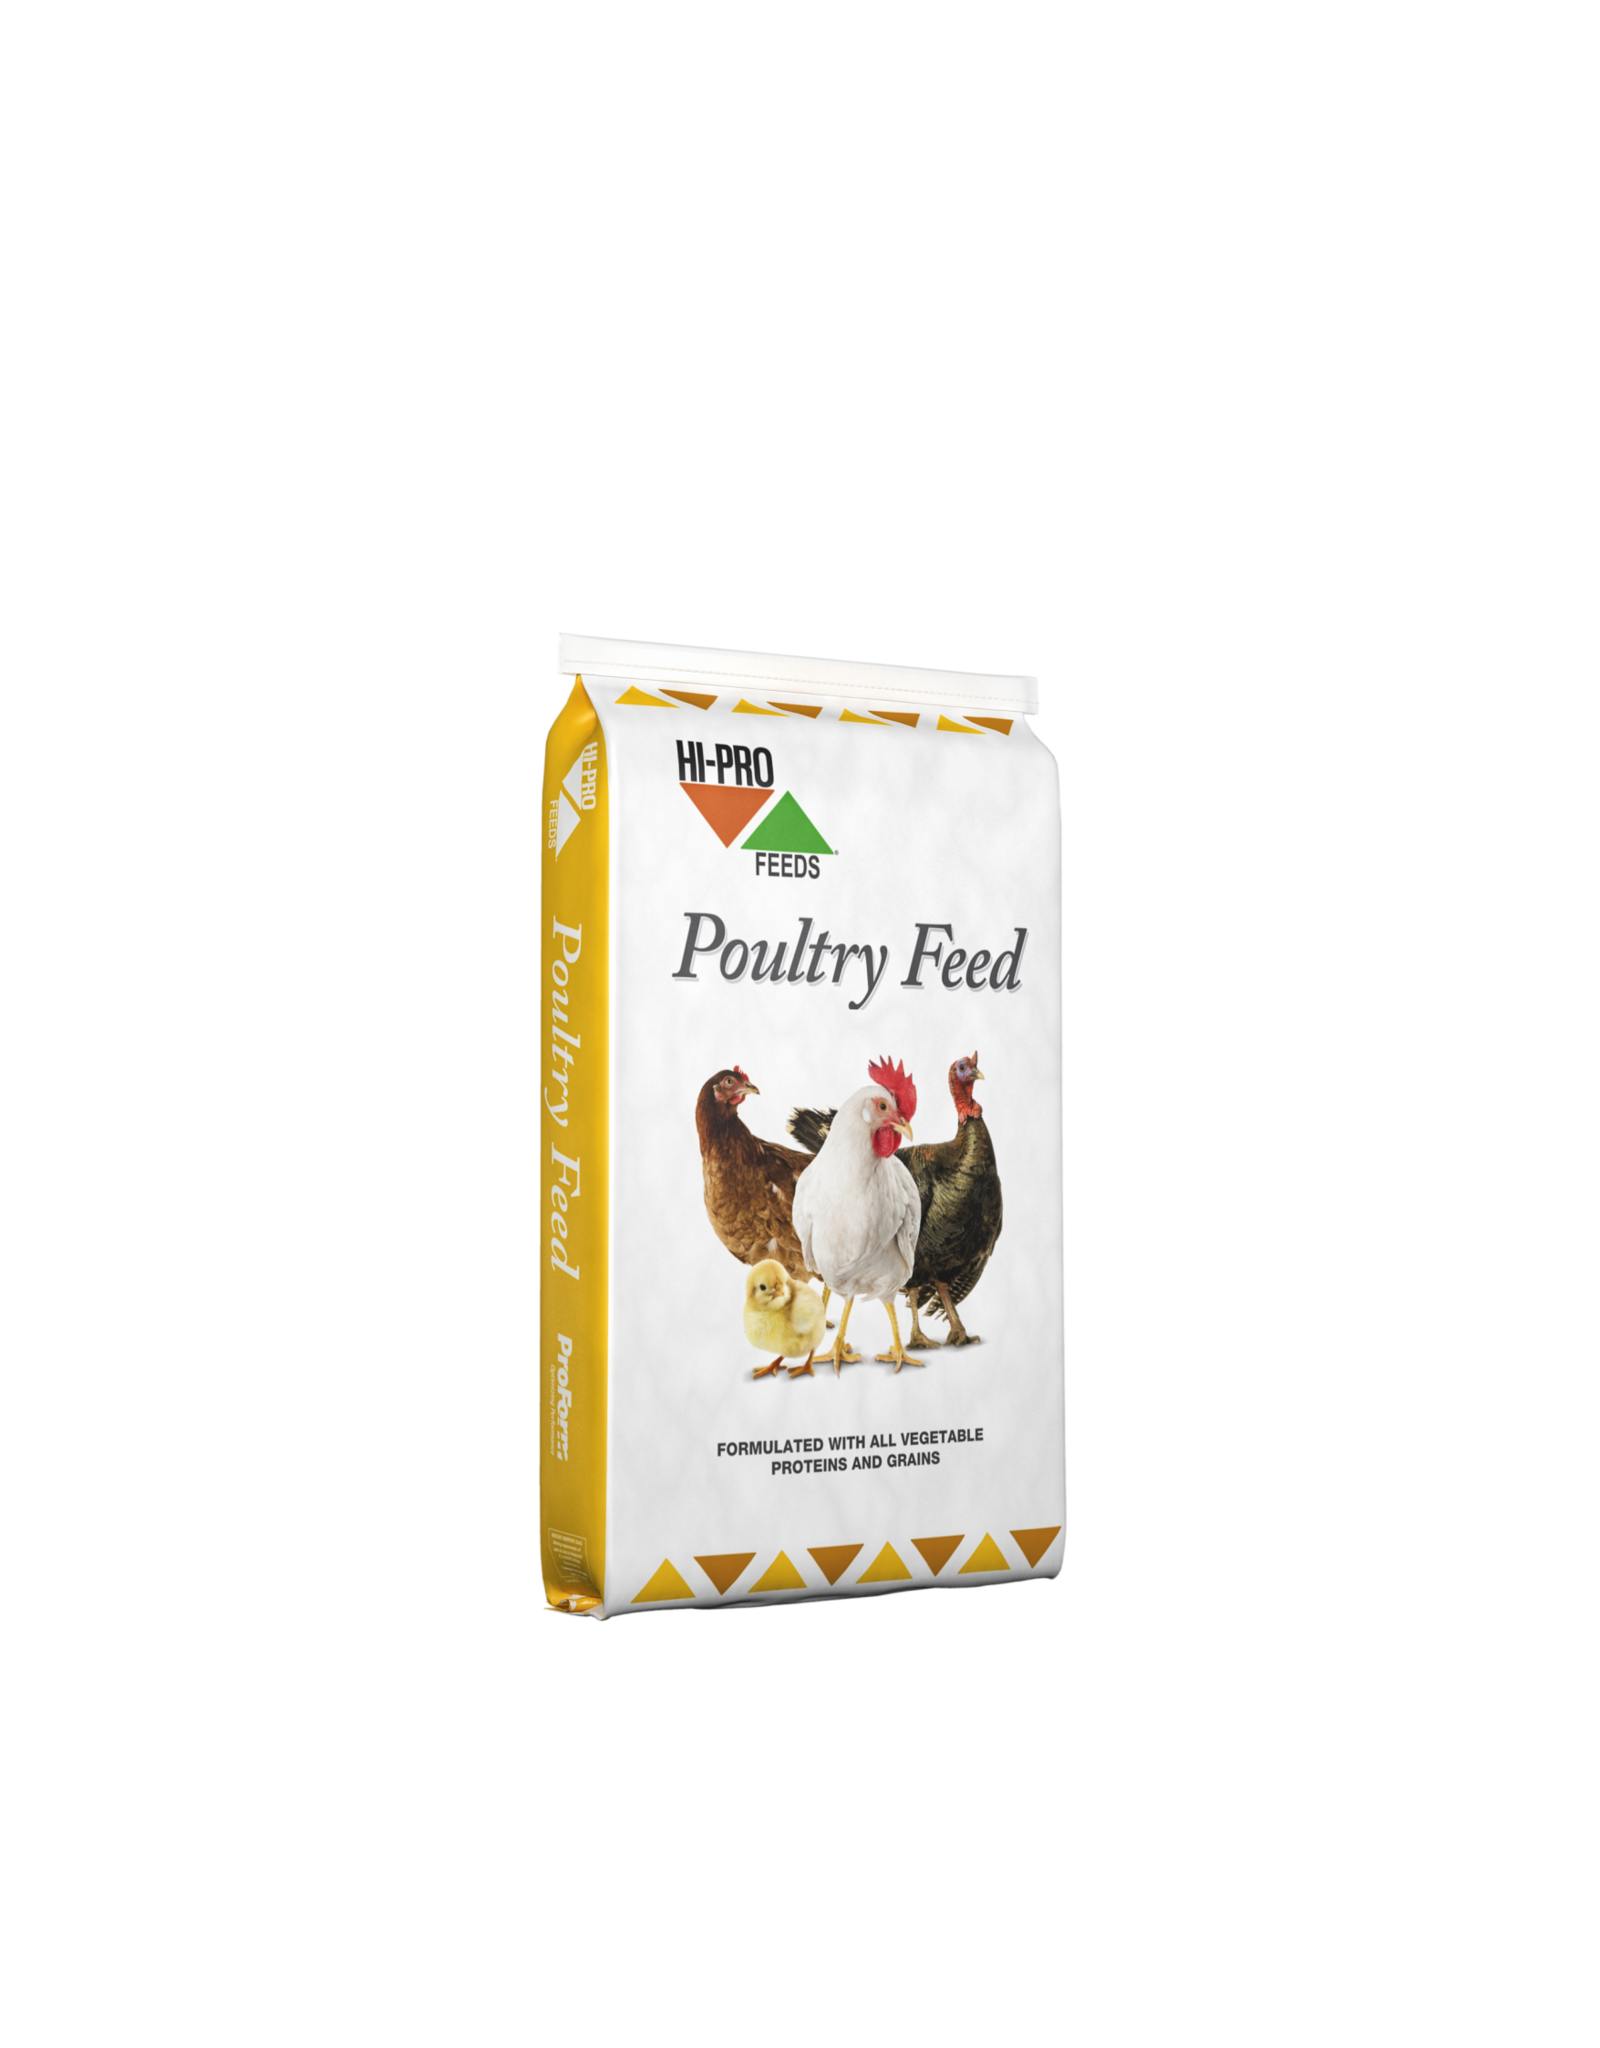 HiPro Feeds (Trouw) HiPro 16% Poultry Grower Crumble 20KG